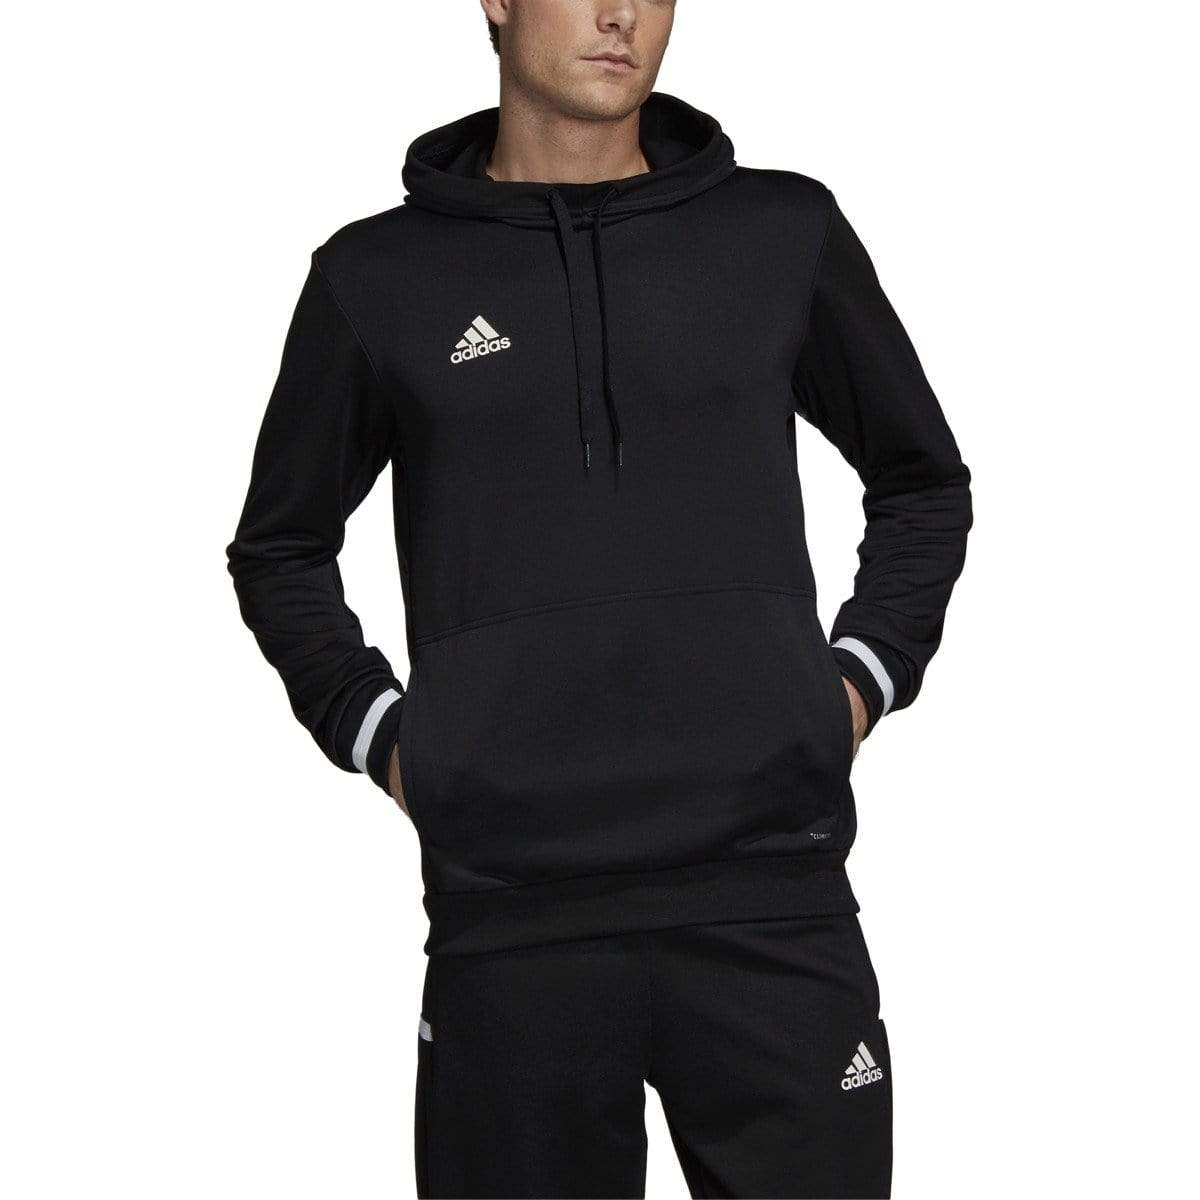 adidas Sweatshirts S / Black Adidas - Men's Team 19 Hoody